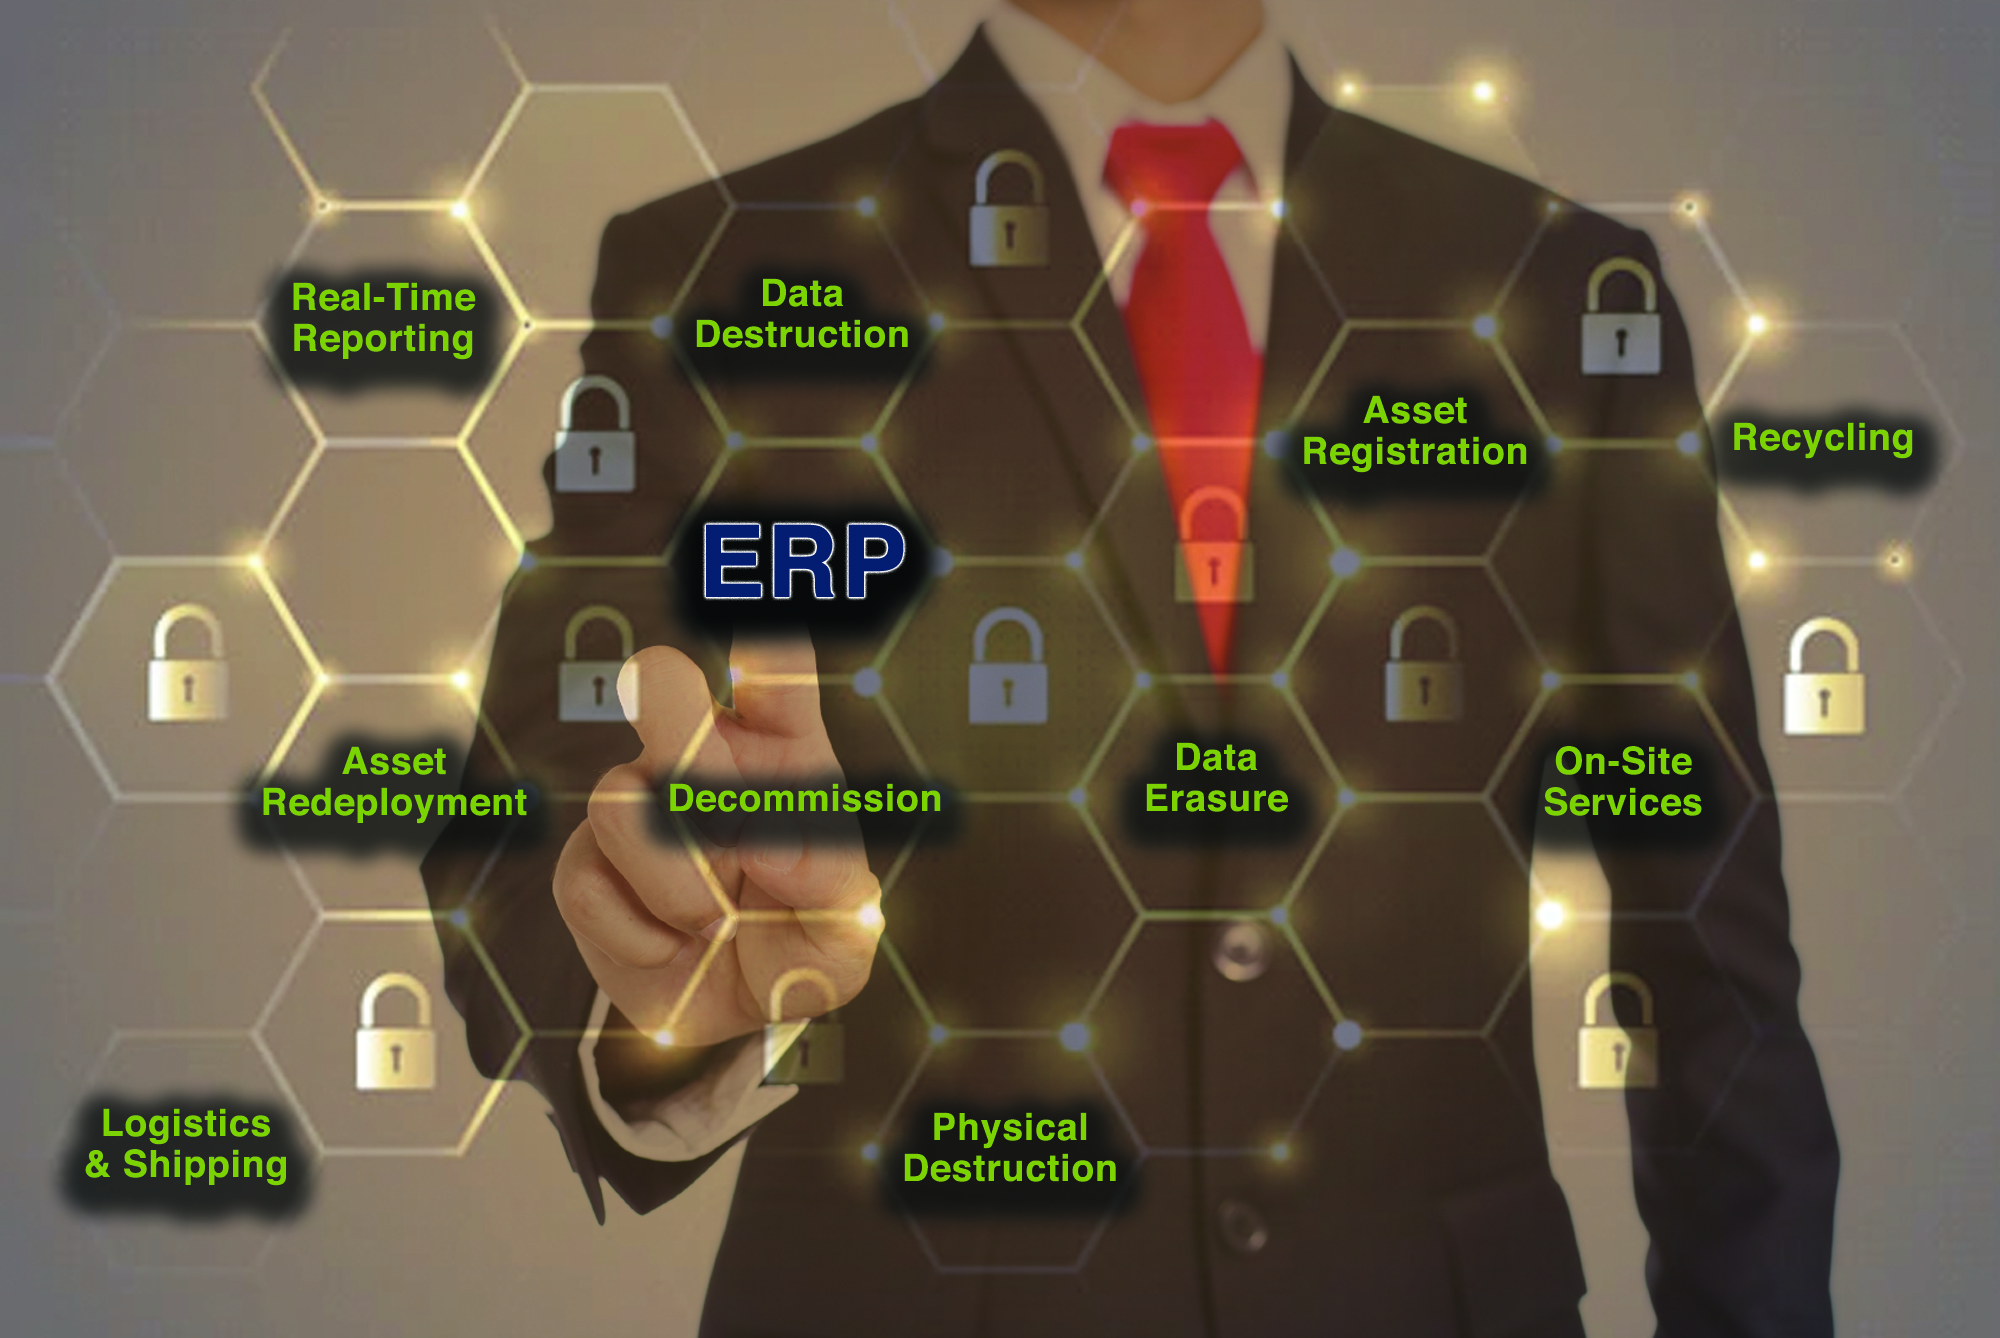 Scaling Up Your ERP for ITAD & Electronics Recycling